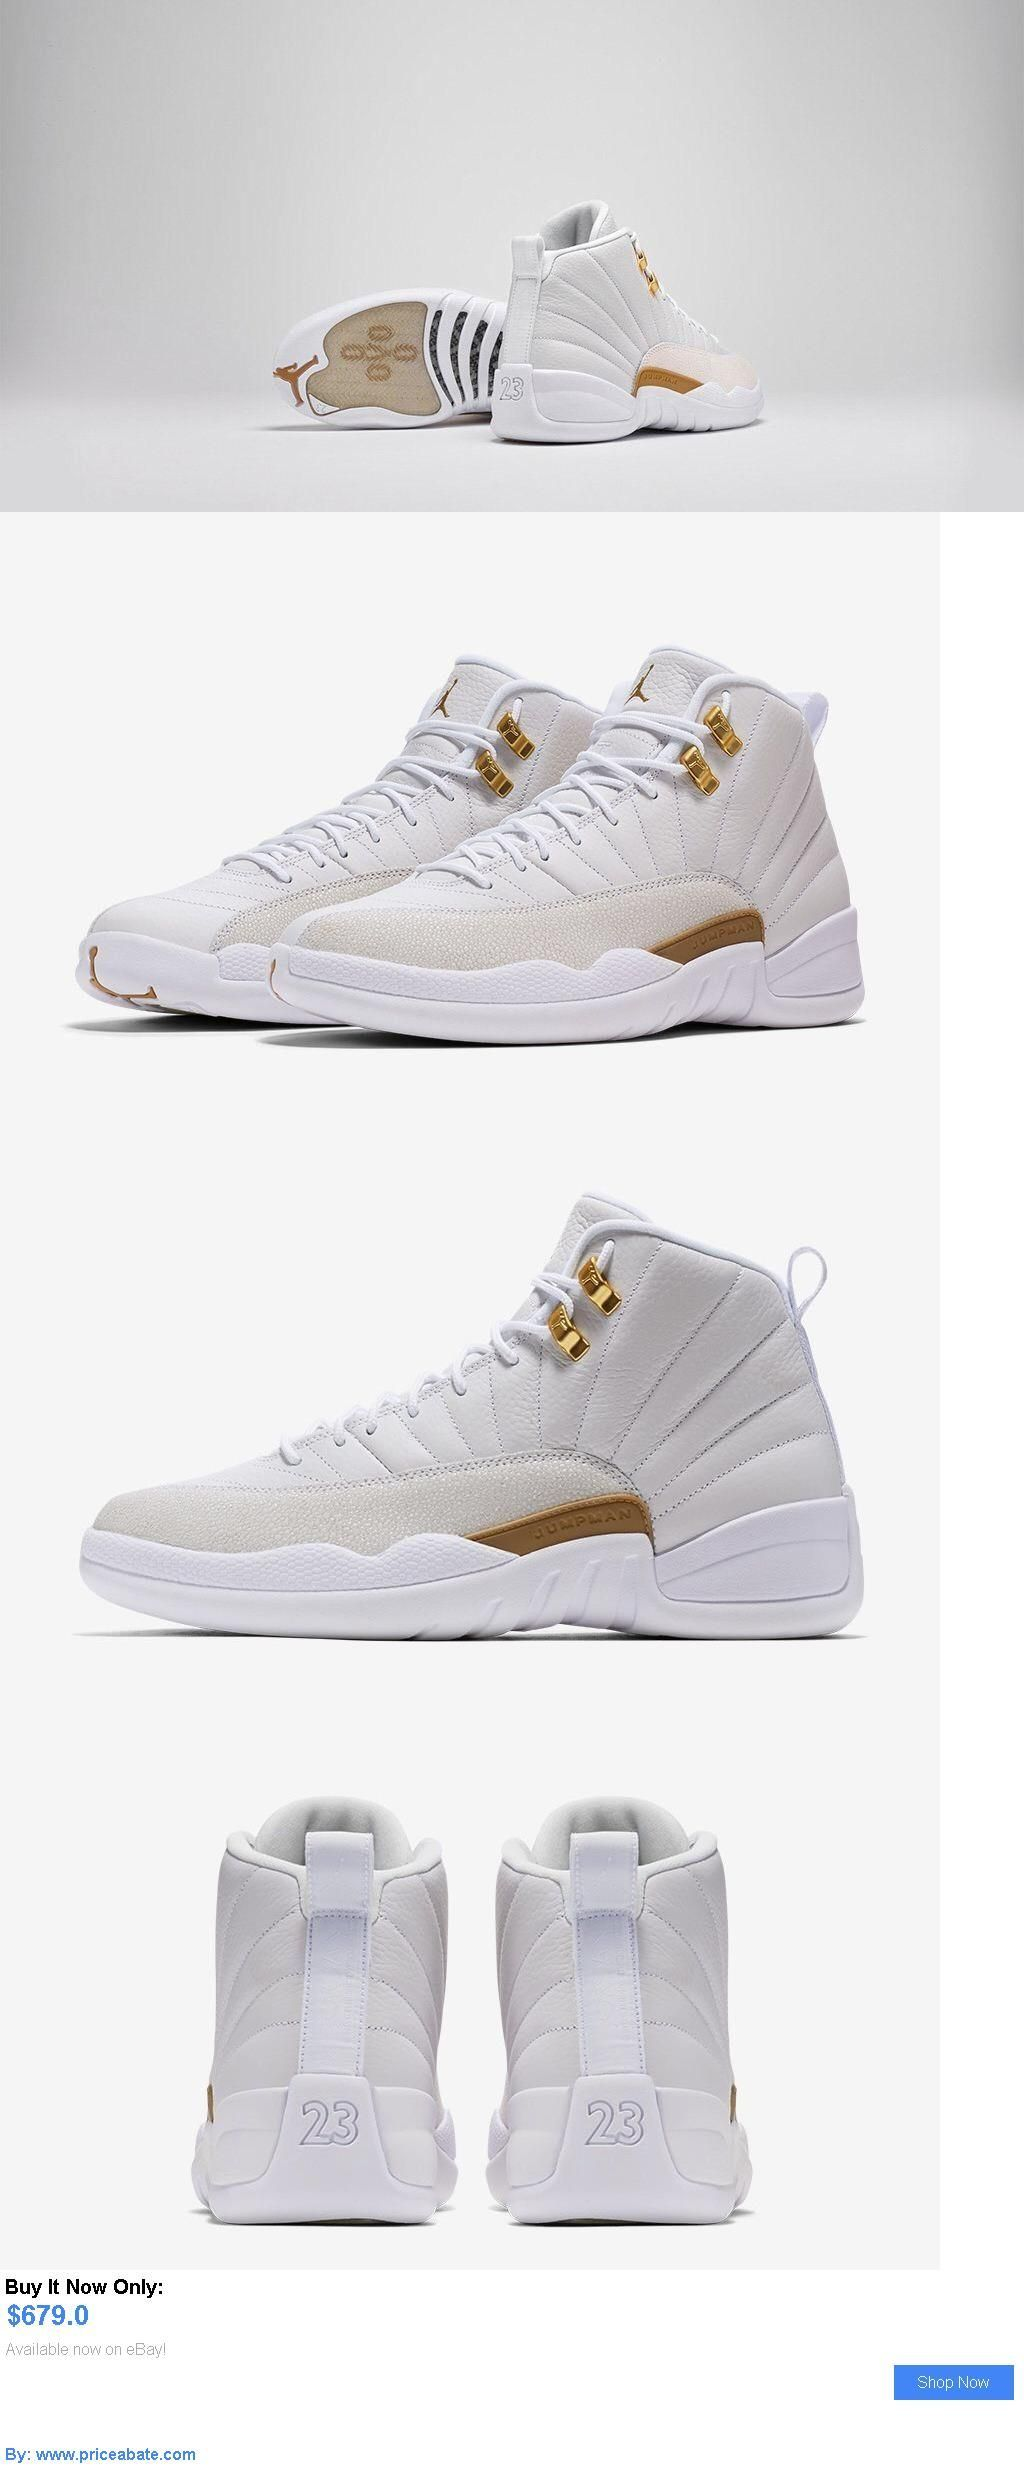 ccf271c36c2d00 Men Shoes  Nike Air Jordan 12 X11 Ovo White Drake 2016 Mens Us Size 8 New  BUY IT NOW ONLY   679.0  priceabateMenShoes OR  priceabate